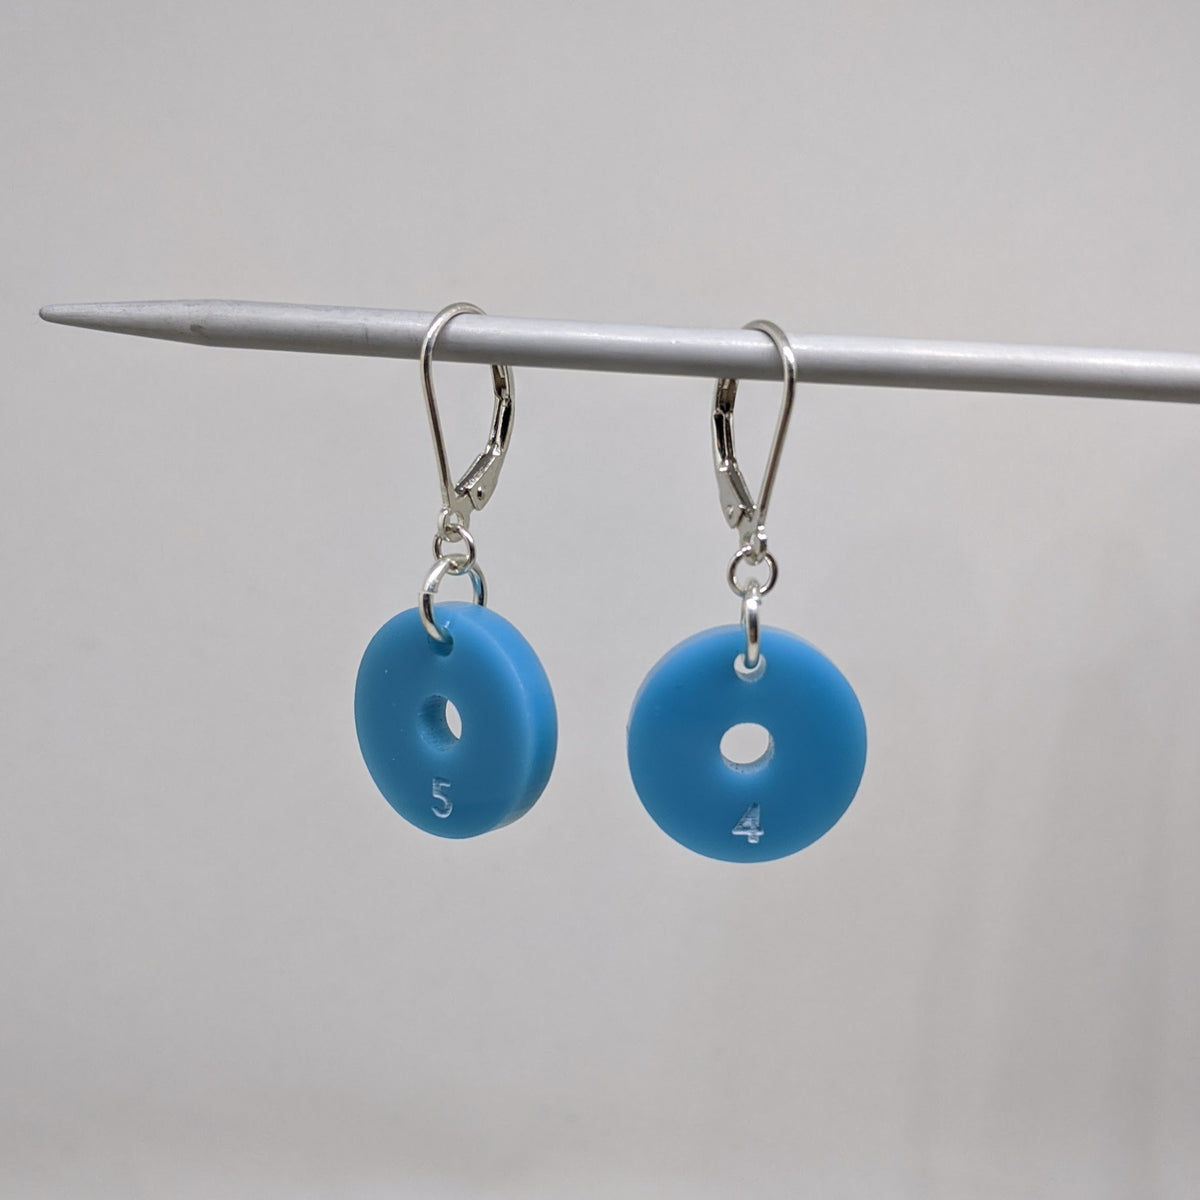 Single Needle Gauge Earrings-Lever back